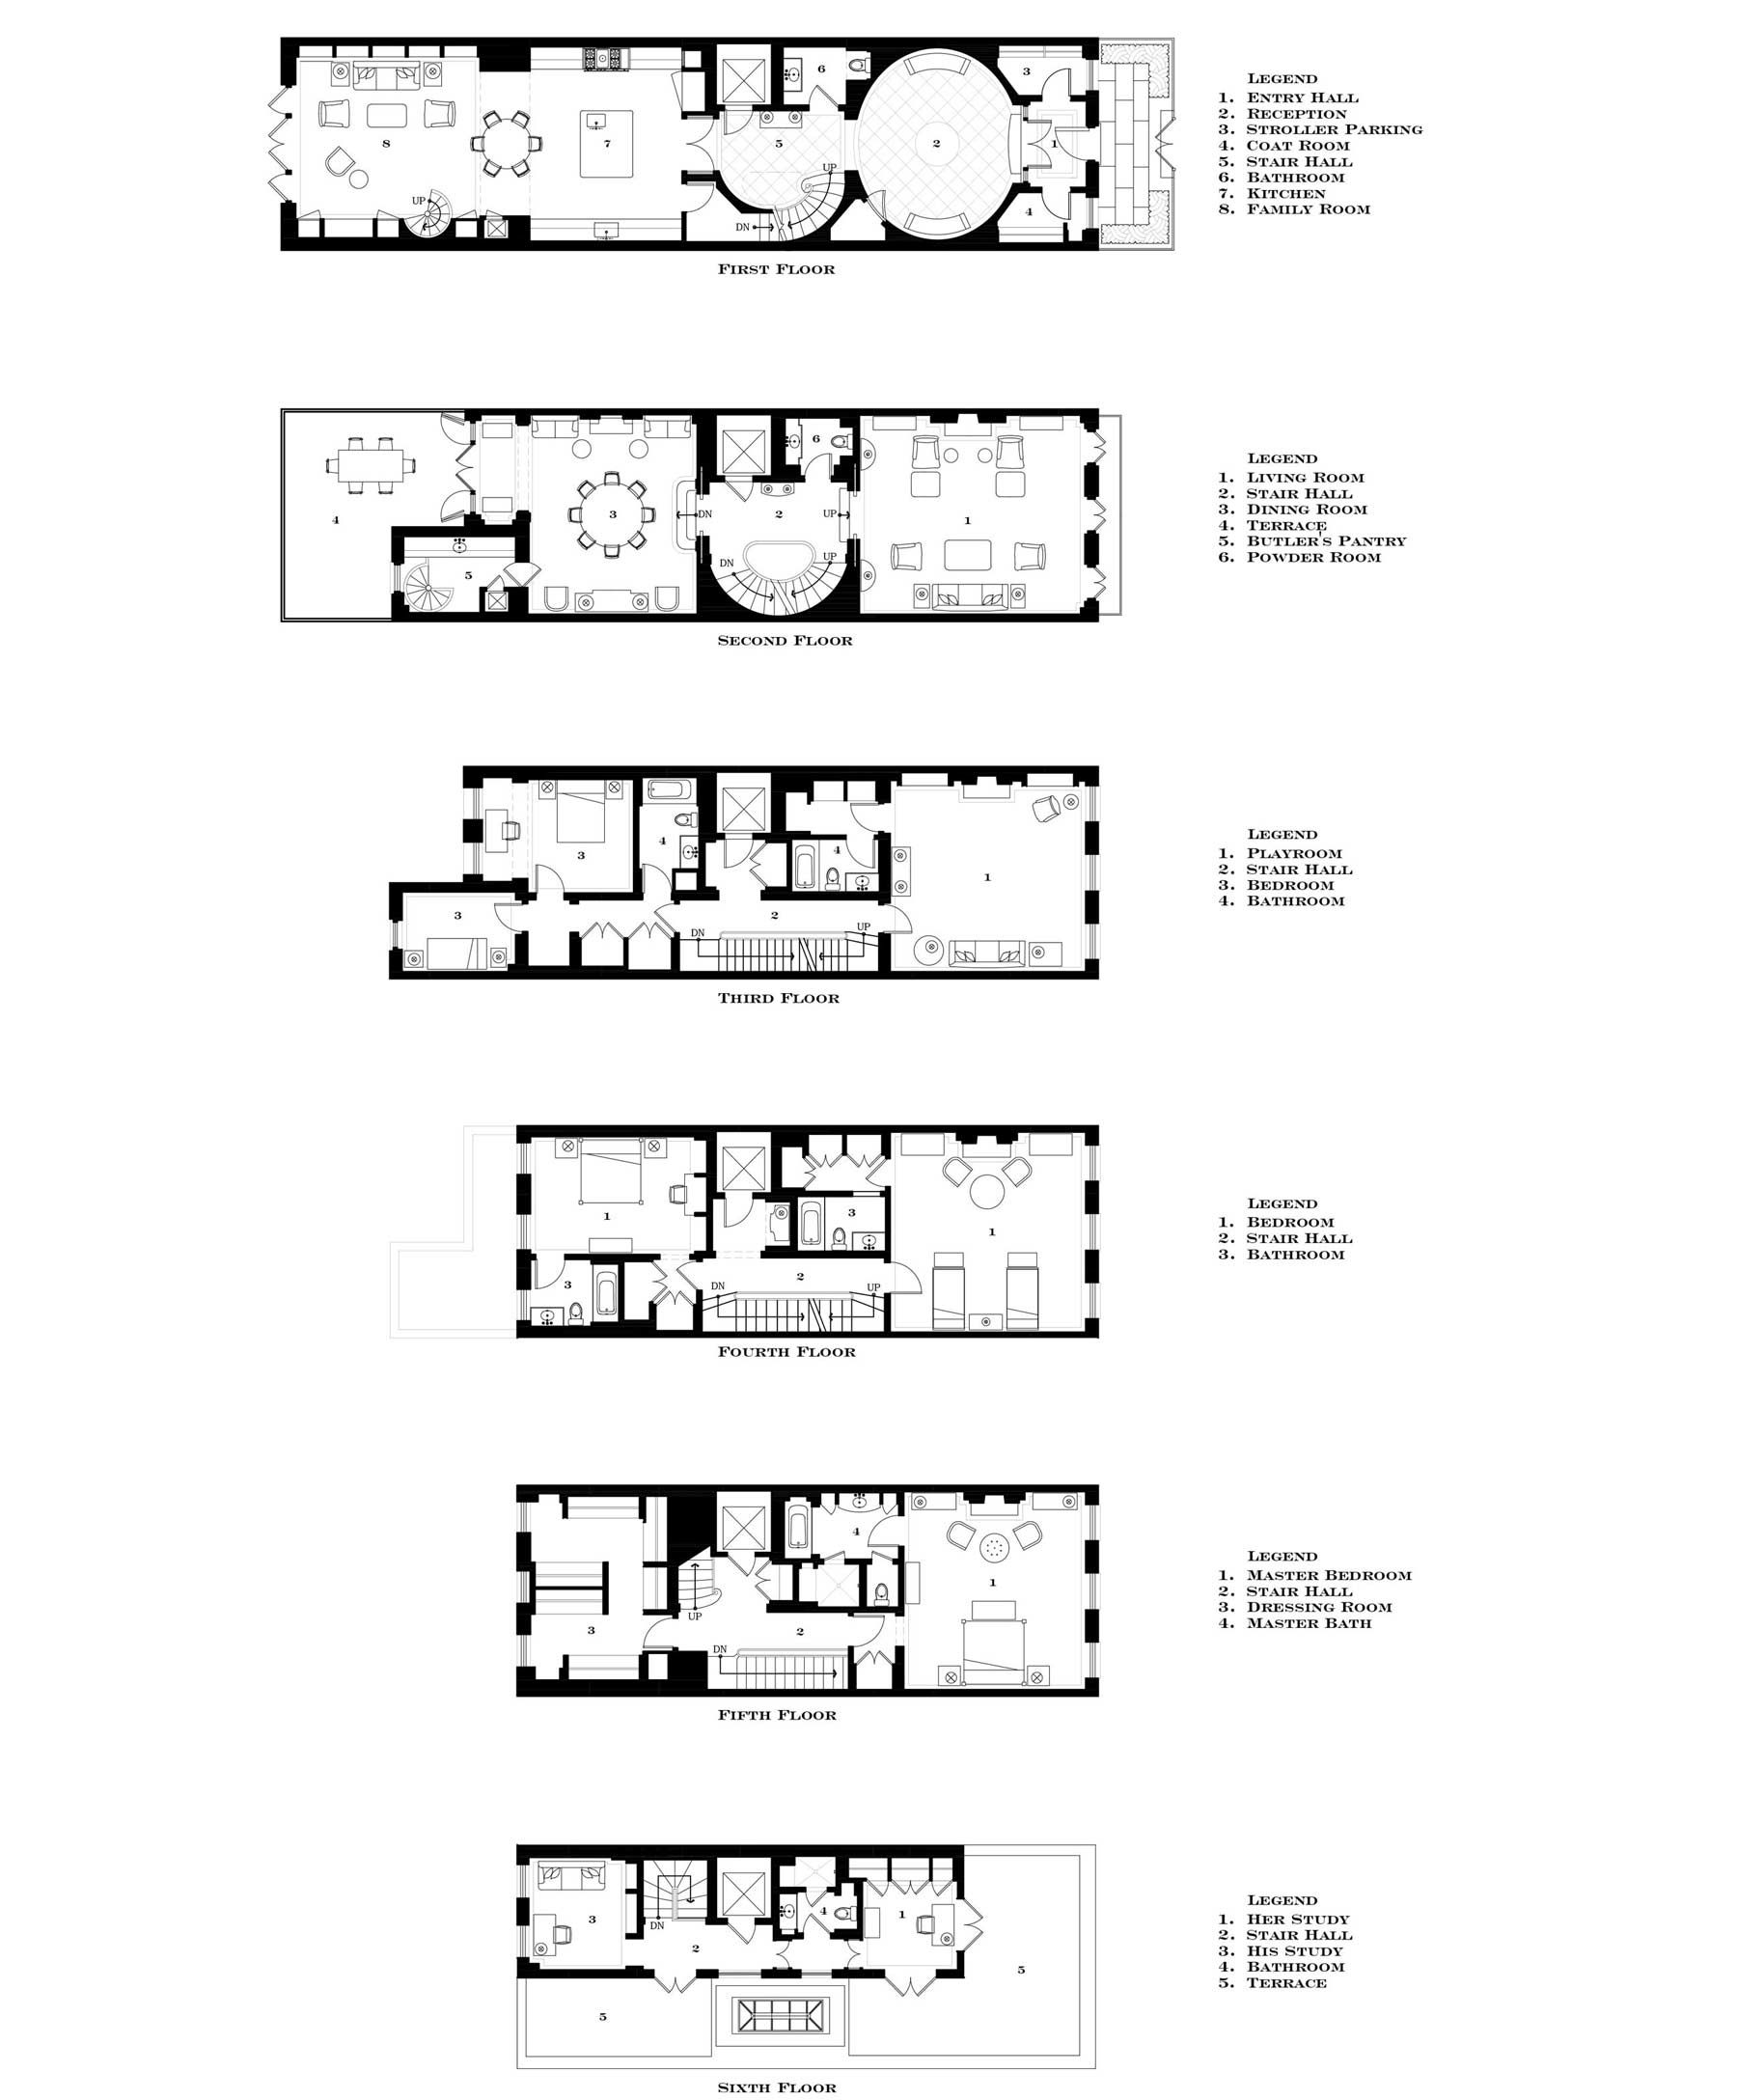 East Side Townhouse G P Schafer Architects Townhouse East Side How To Plan